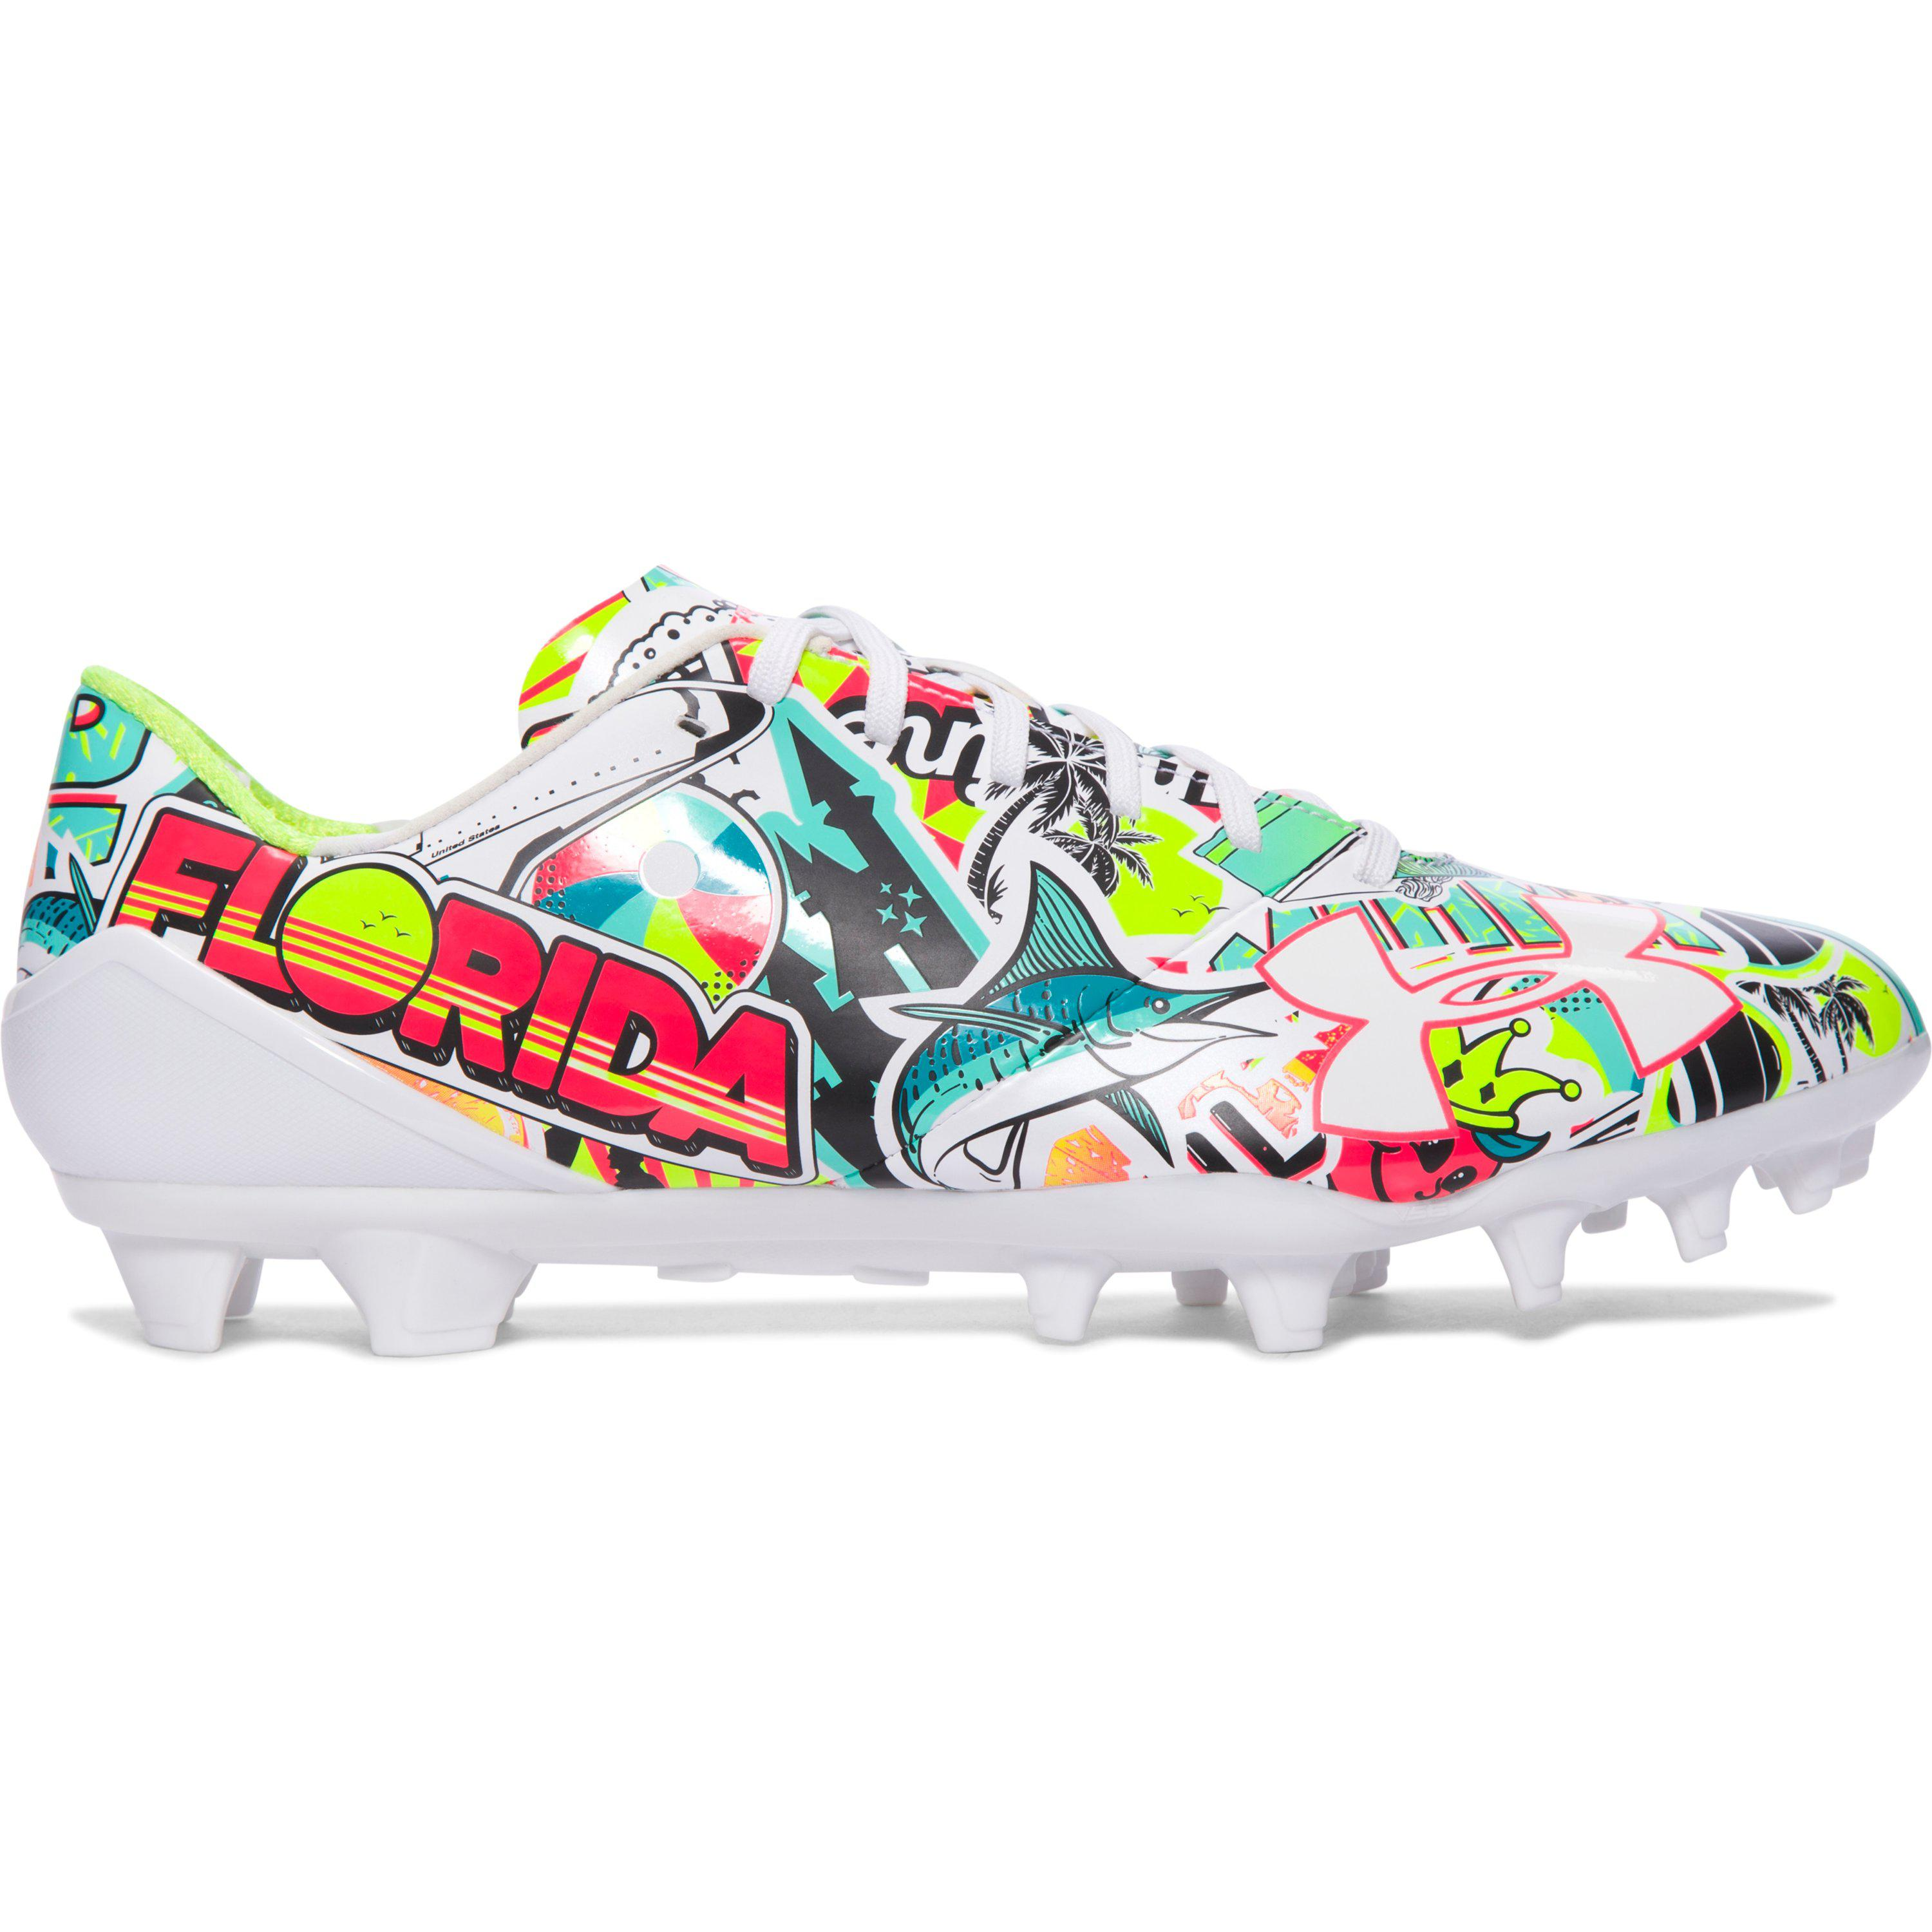 100334c24 Under Armour Men s Ua Spotlight – Limited Edition Football Cleats ...